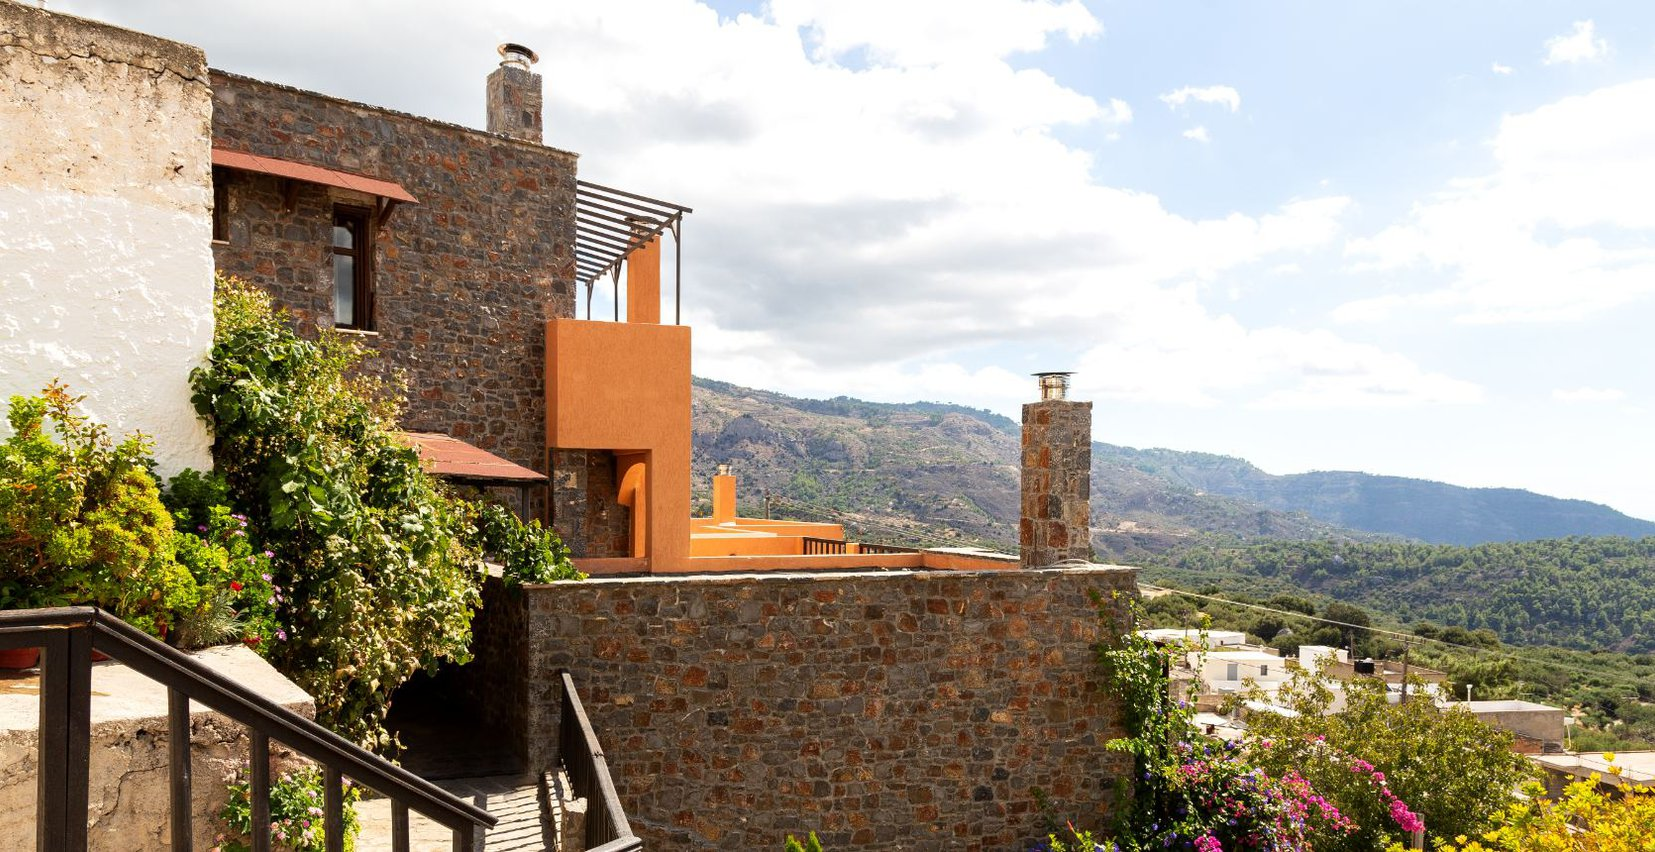 Mala Villa with the mountains in the background